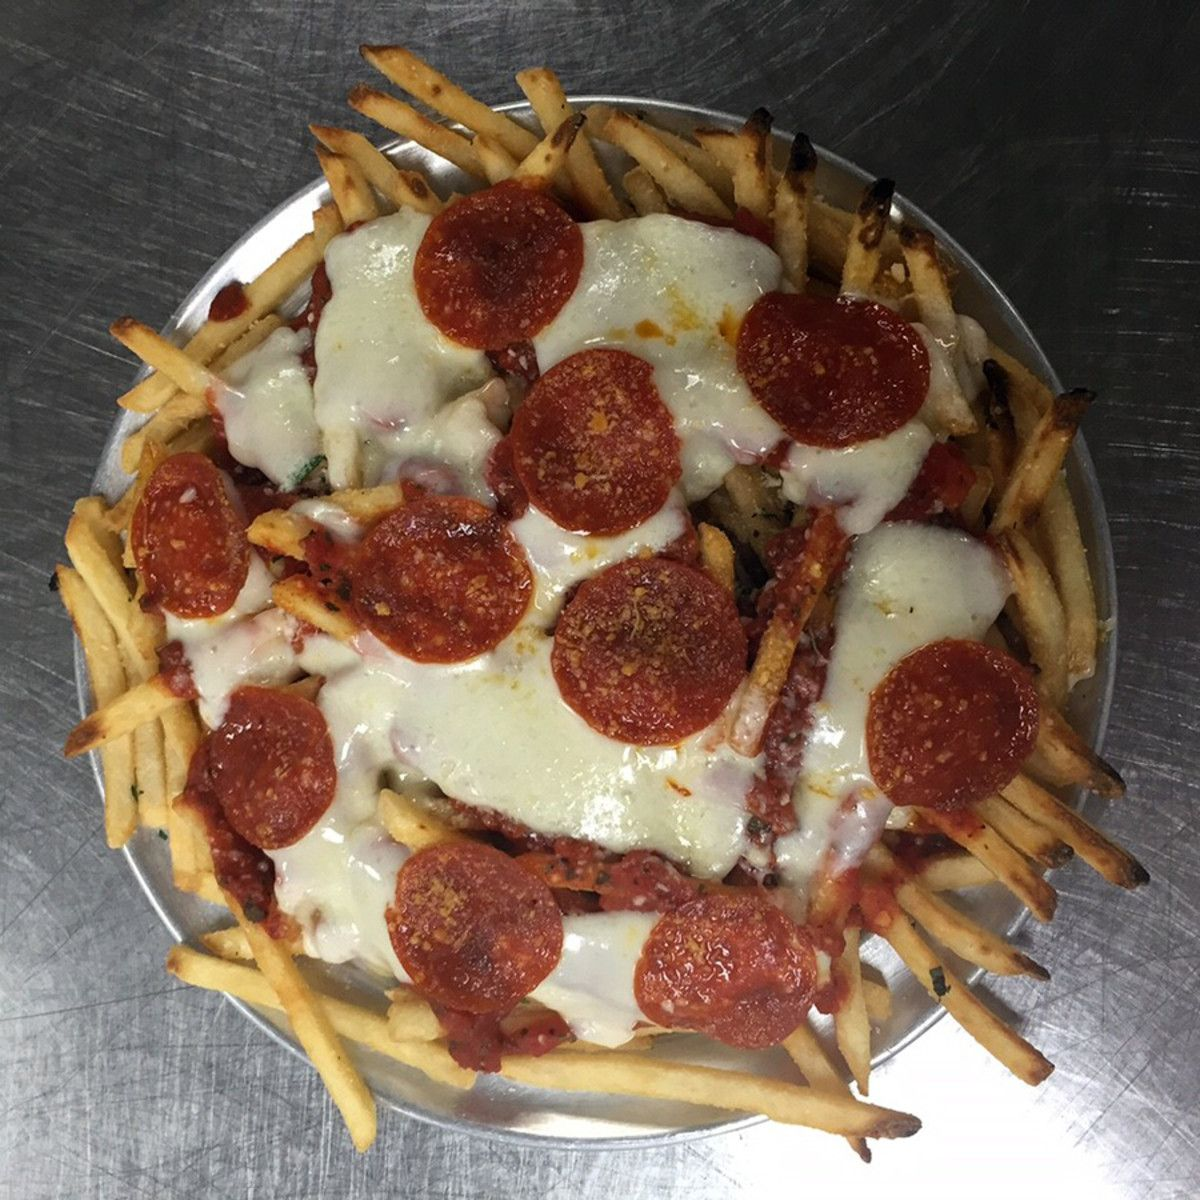 Homemade Pepperoni And Cheese PIzza French Fries Stock ...  Pepperoni Pizza French Fries